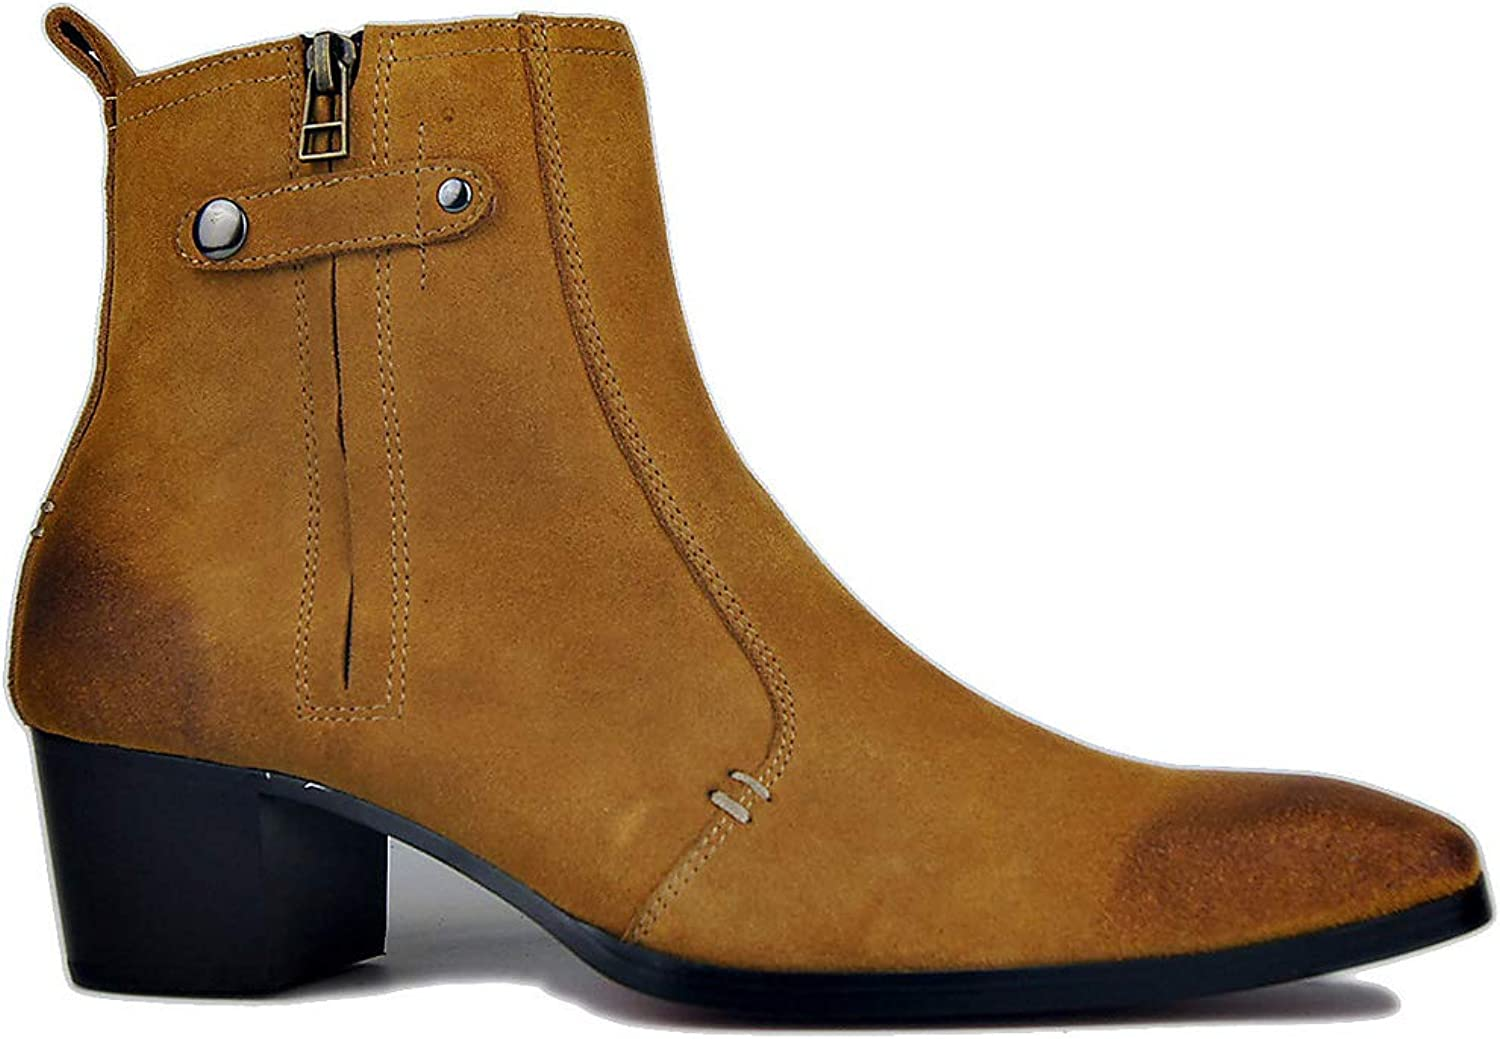 Men's Ankle Boots, Leather Tube Cowboy Boots, Adult Personality red Boots